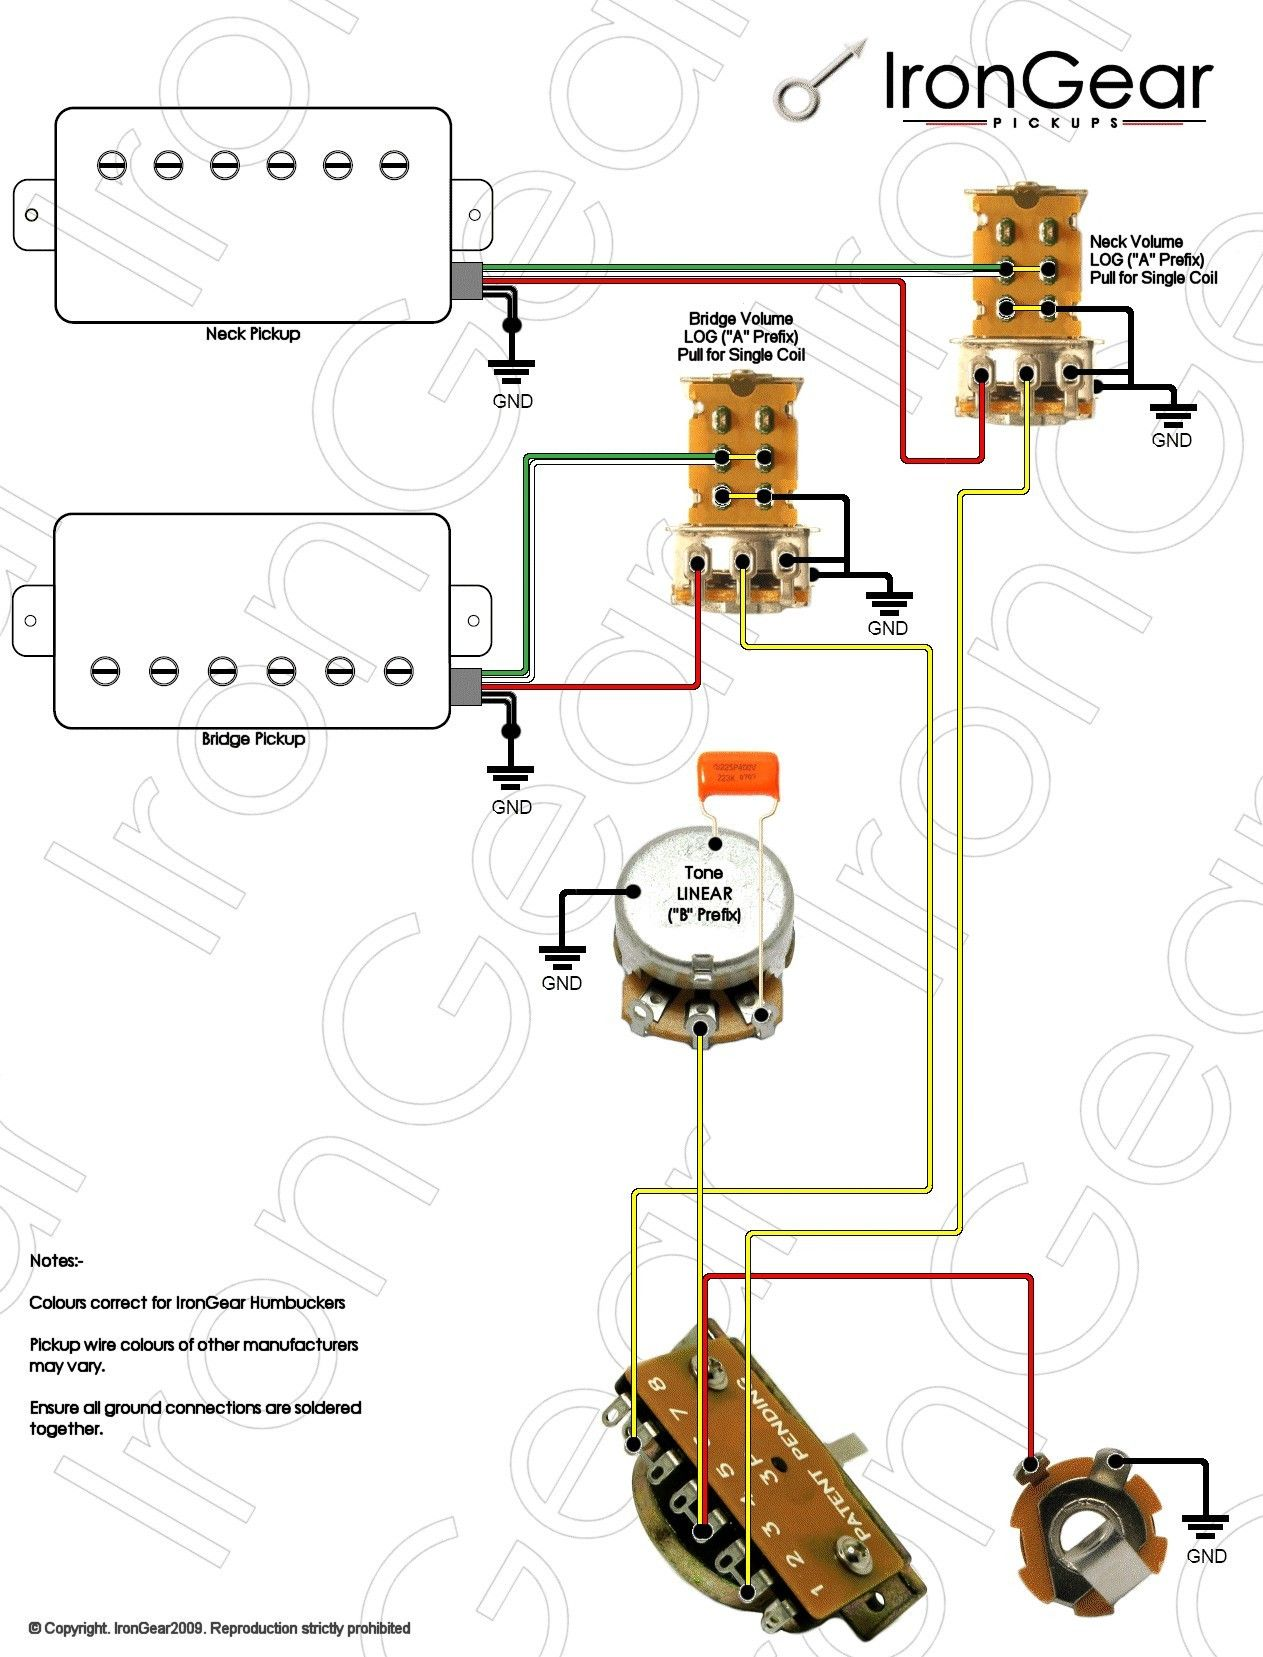 Unique Albatross Guitar Wiring Diagram  Diagram  Diagramsample  Diagramtemplate  Wiringdiagram